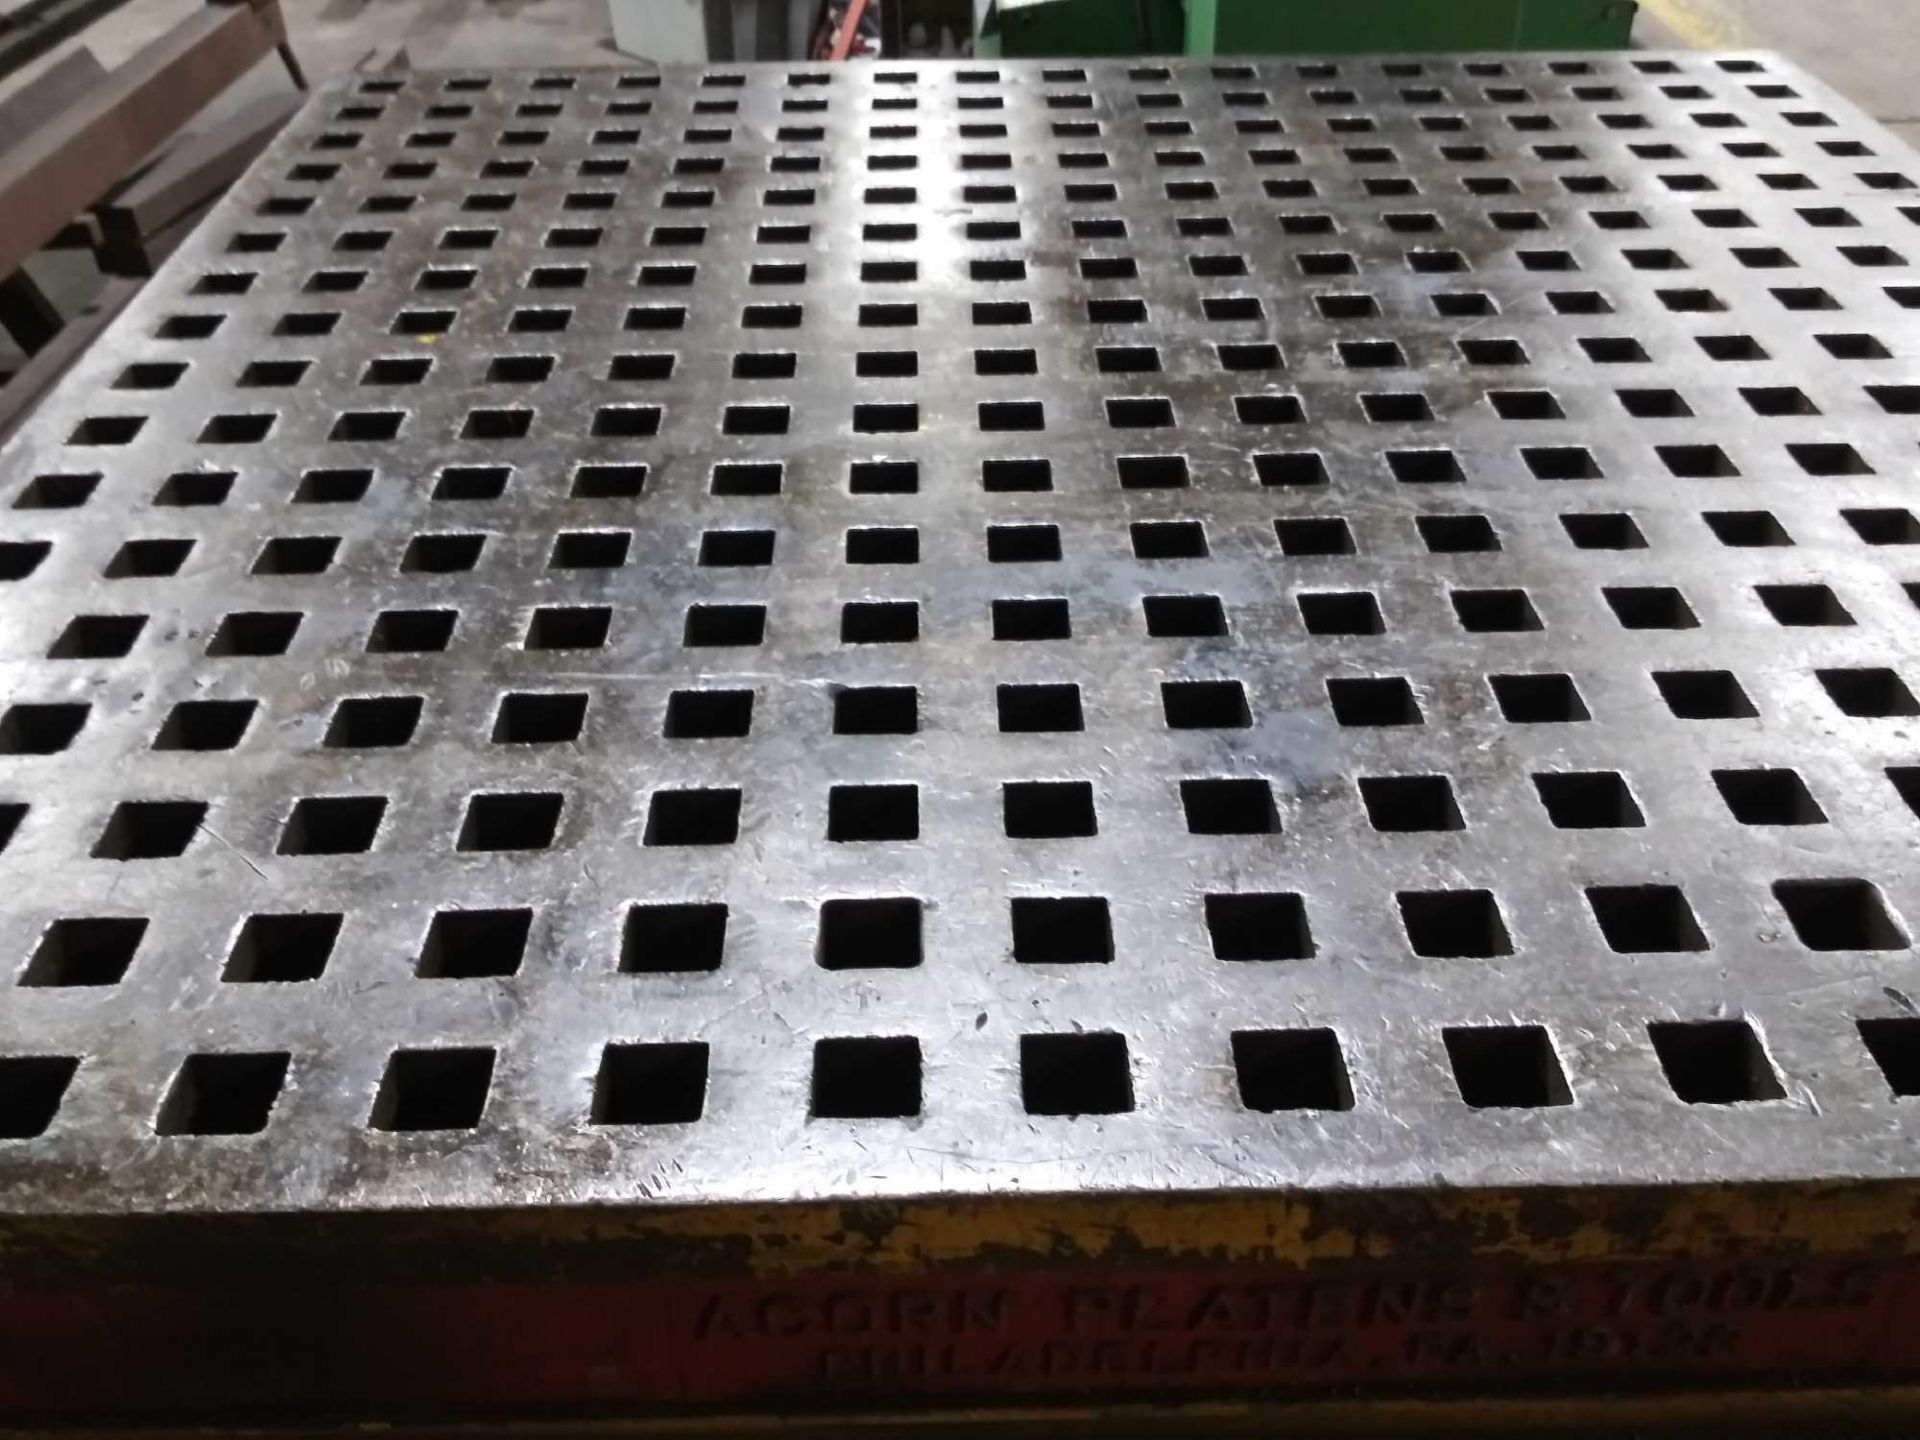 """Acorn Platens & Tools Welding Table, 60""""x60""""x30"""", square hole dimensions 1-3/4"""", inv1080 - Image 8 of 15"""